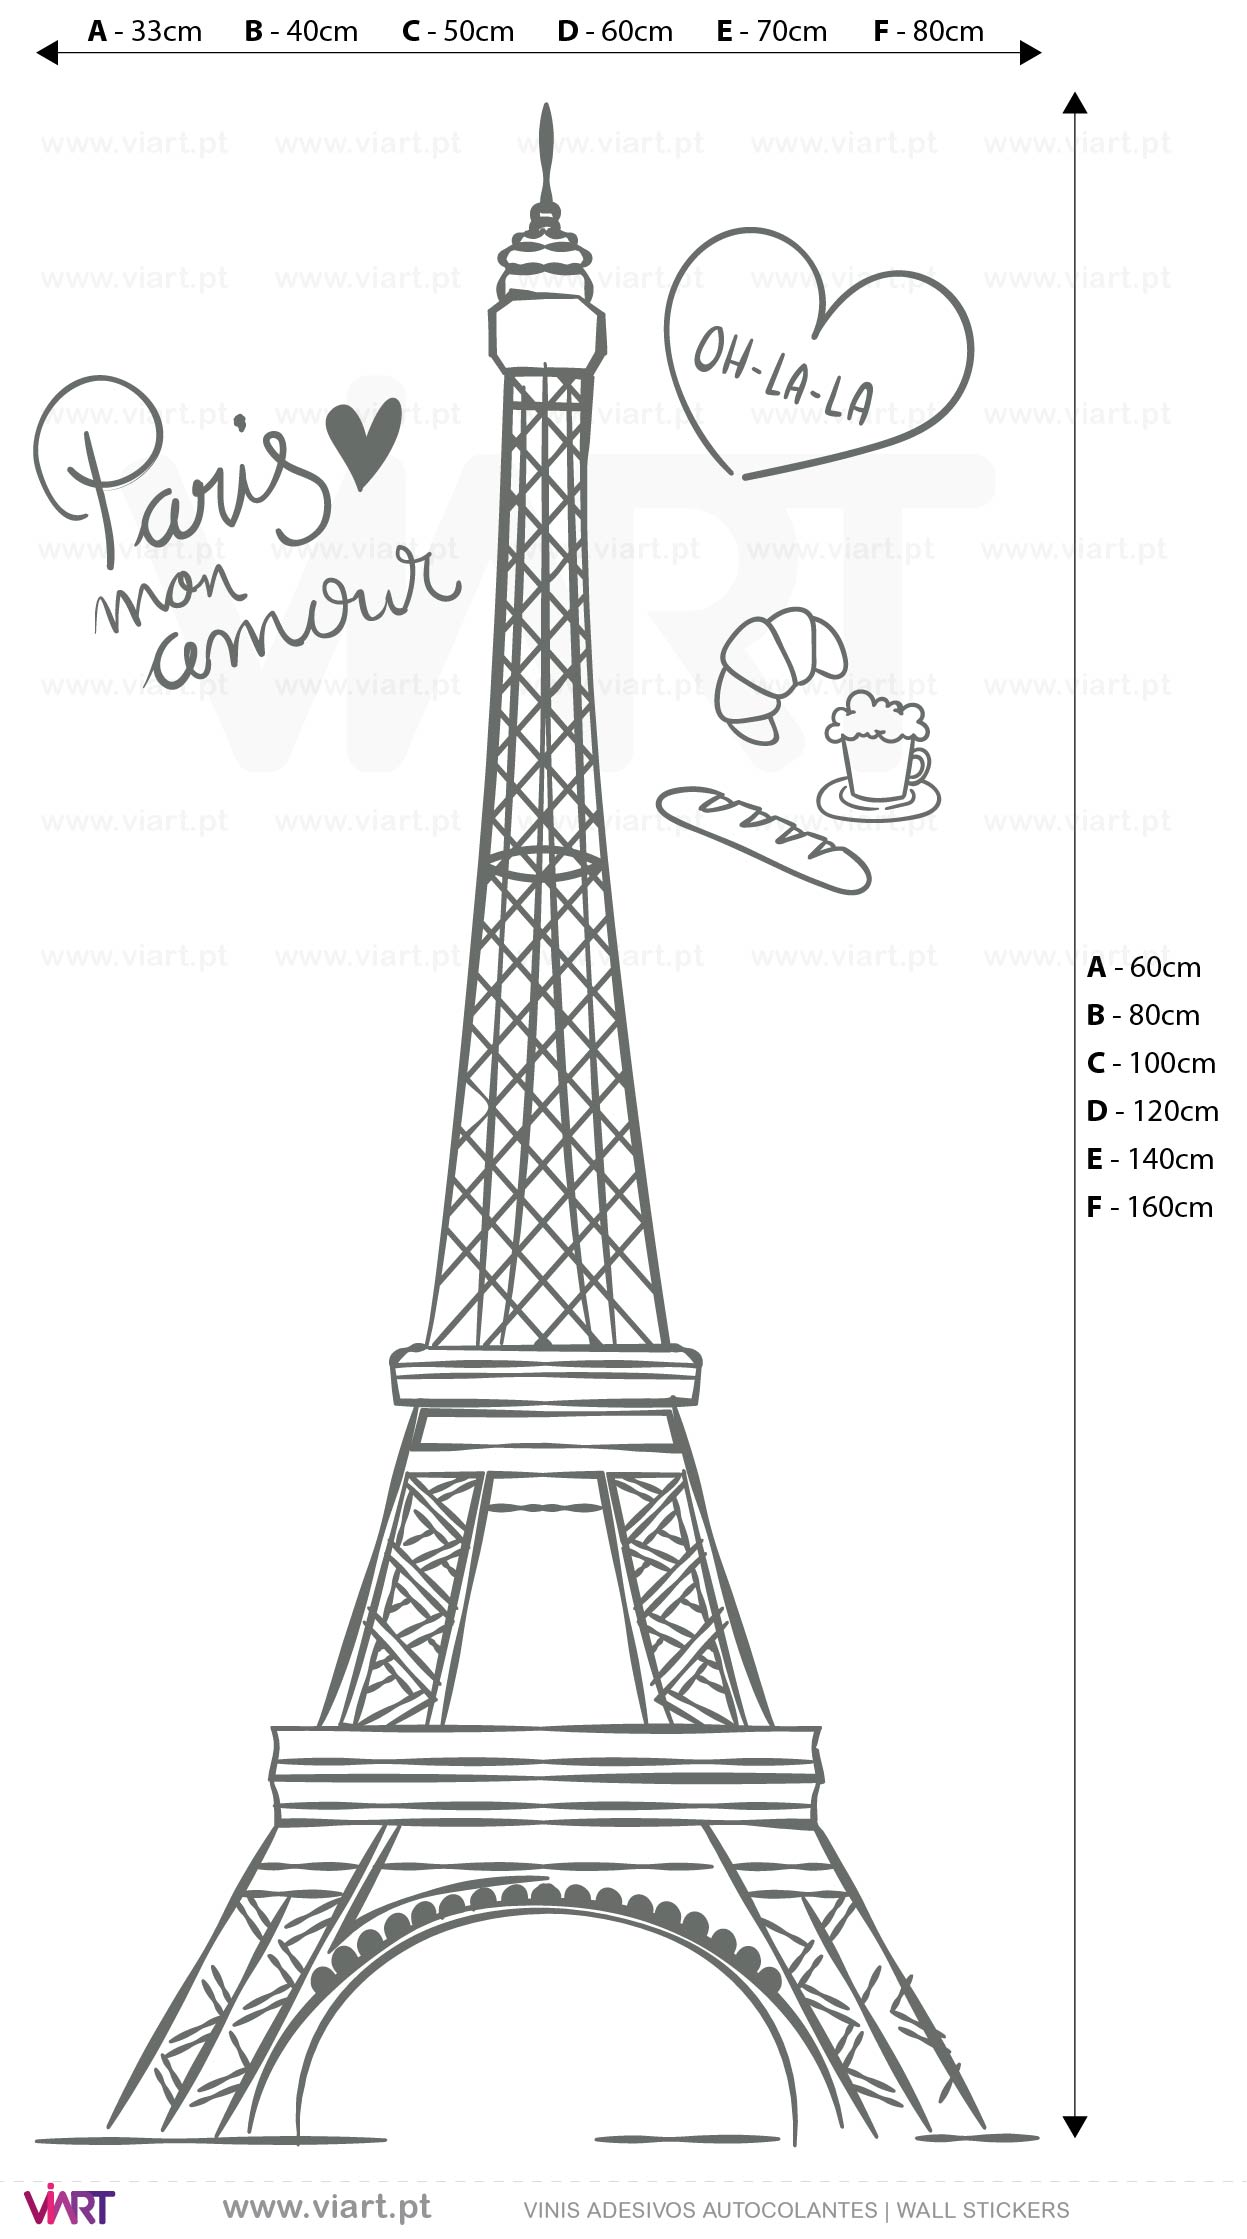 Viart - WALL STICKERS - Eiffel Tower - Paris mon amour! Measures